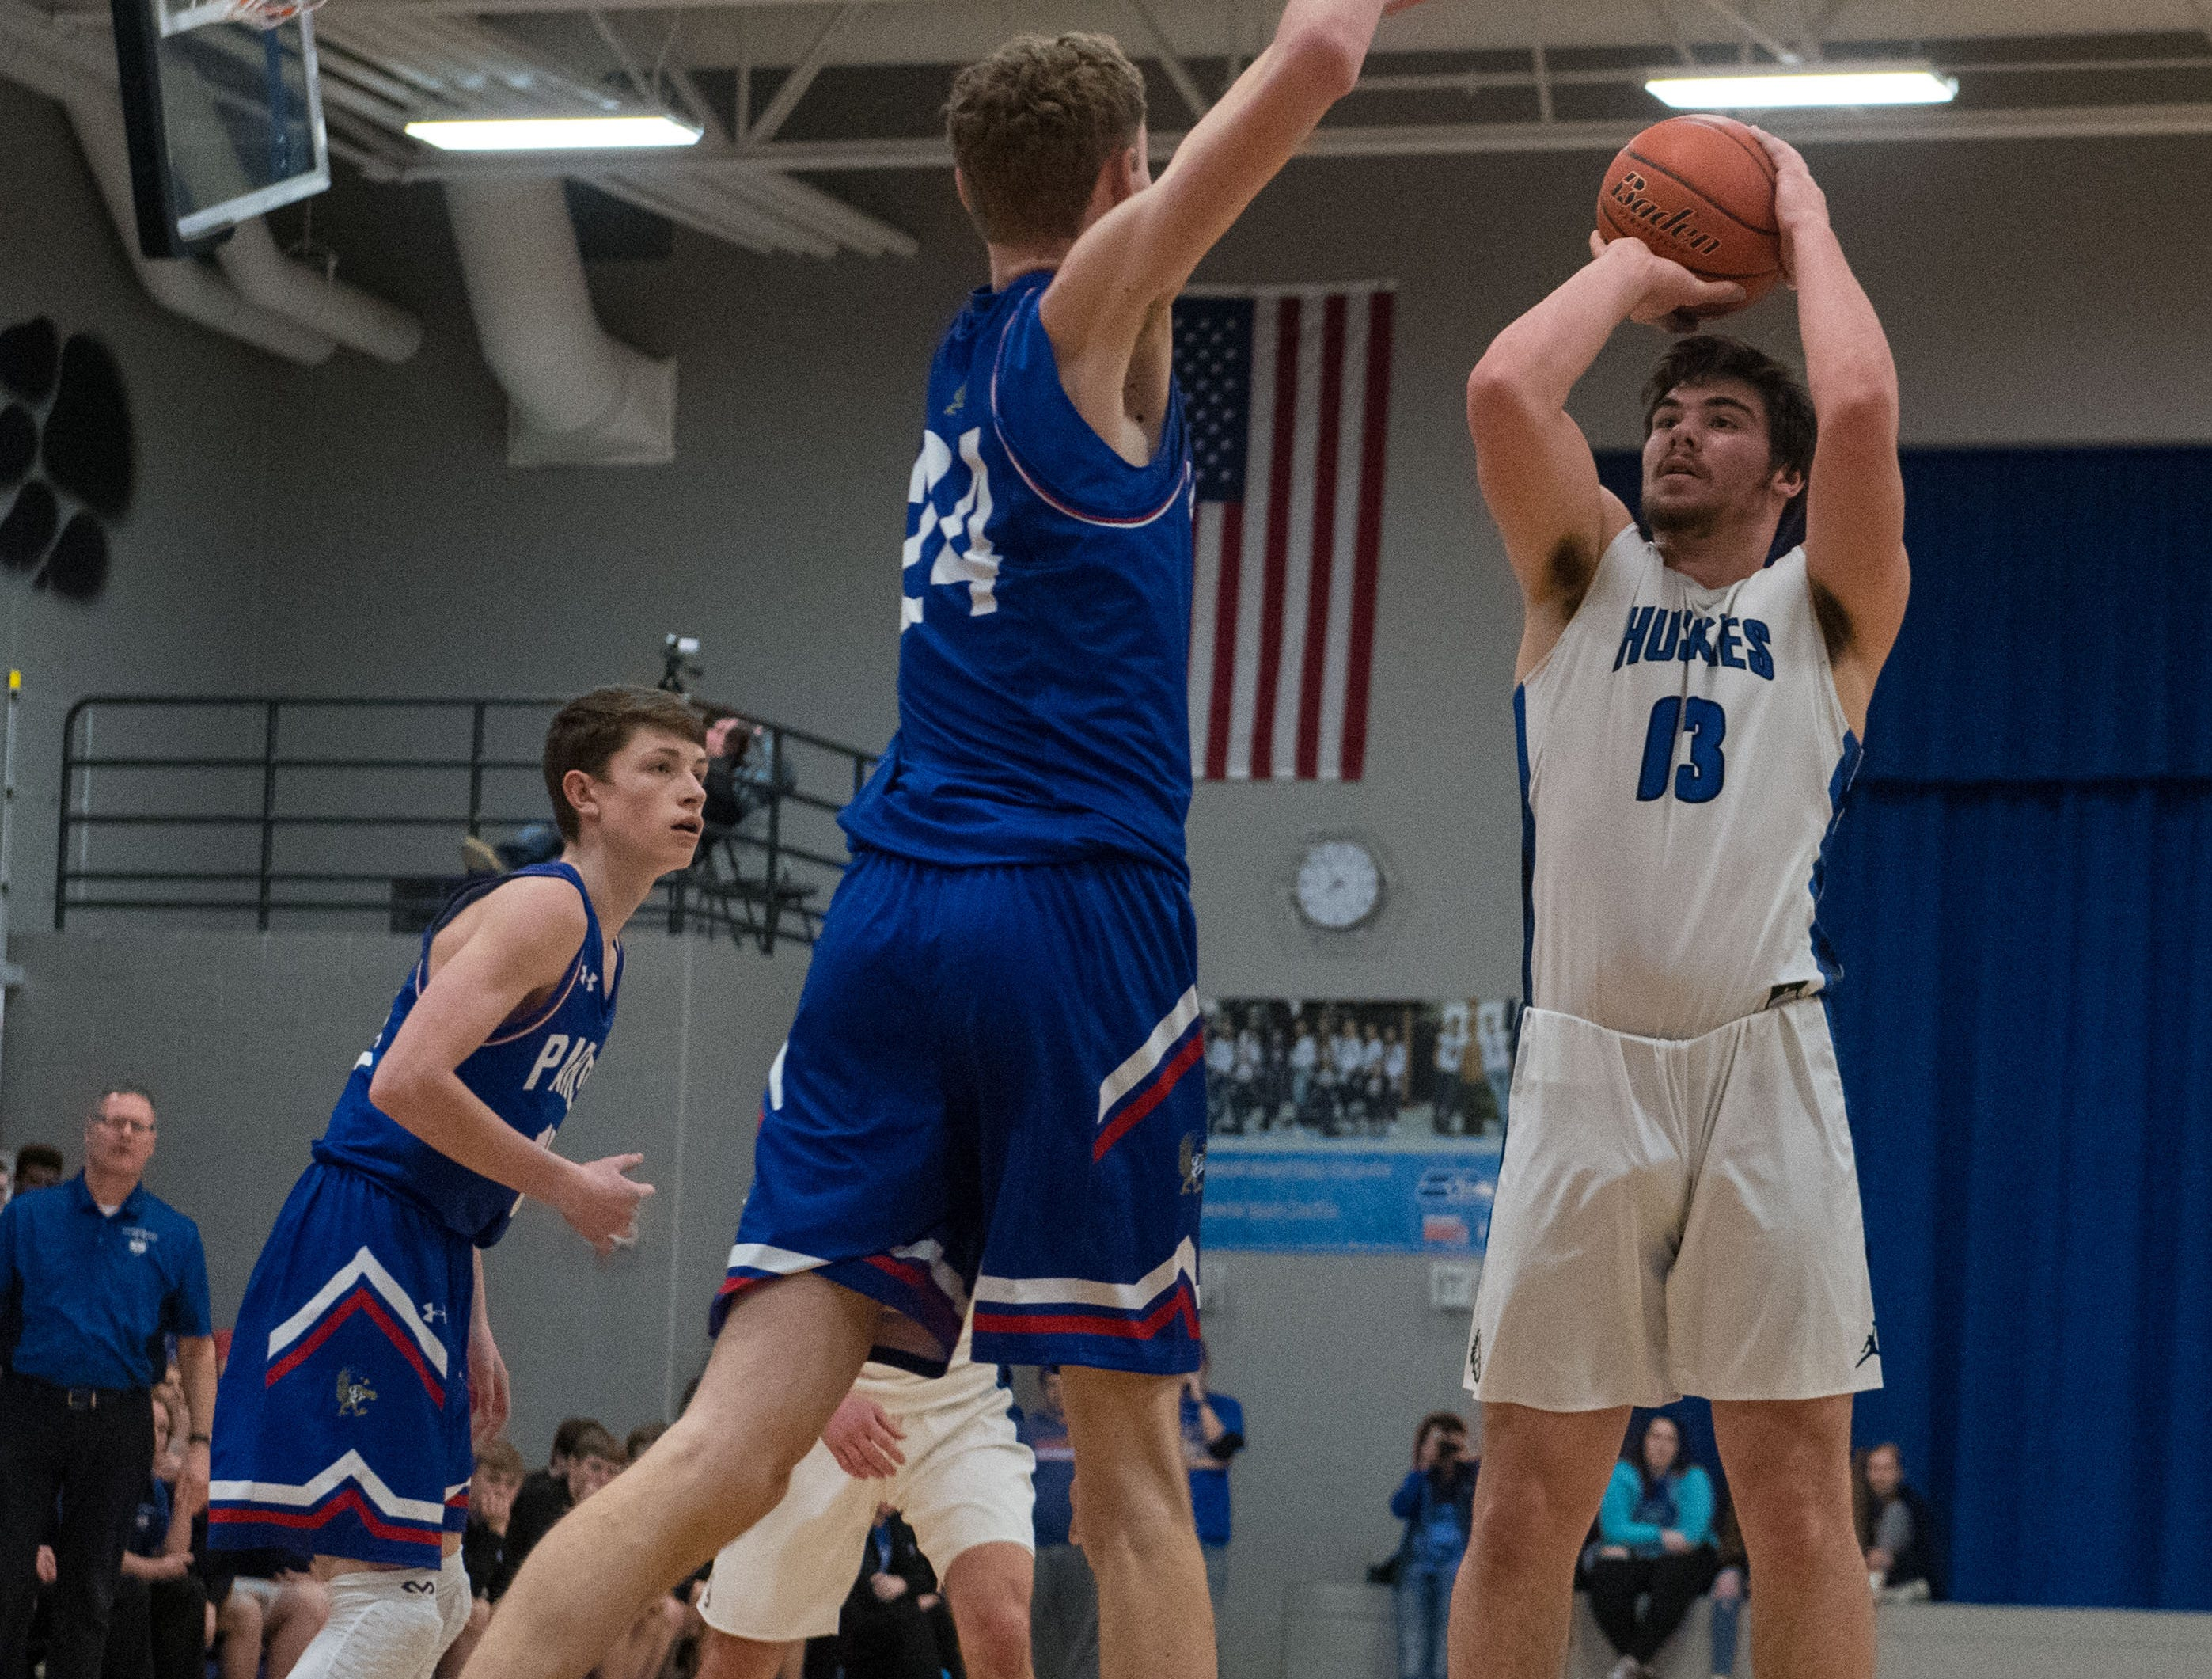 Bridgewater Emery's Carter Dye (13) shoots the ball over Parker player during a game in Emery, S.D., Friday, Feb. 15, 2019.